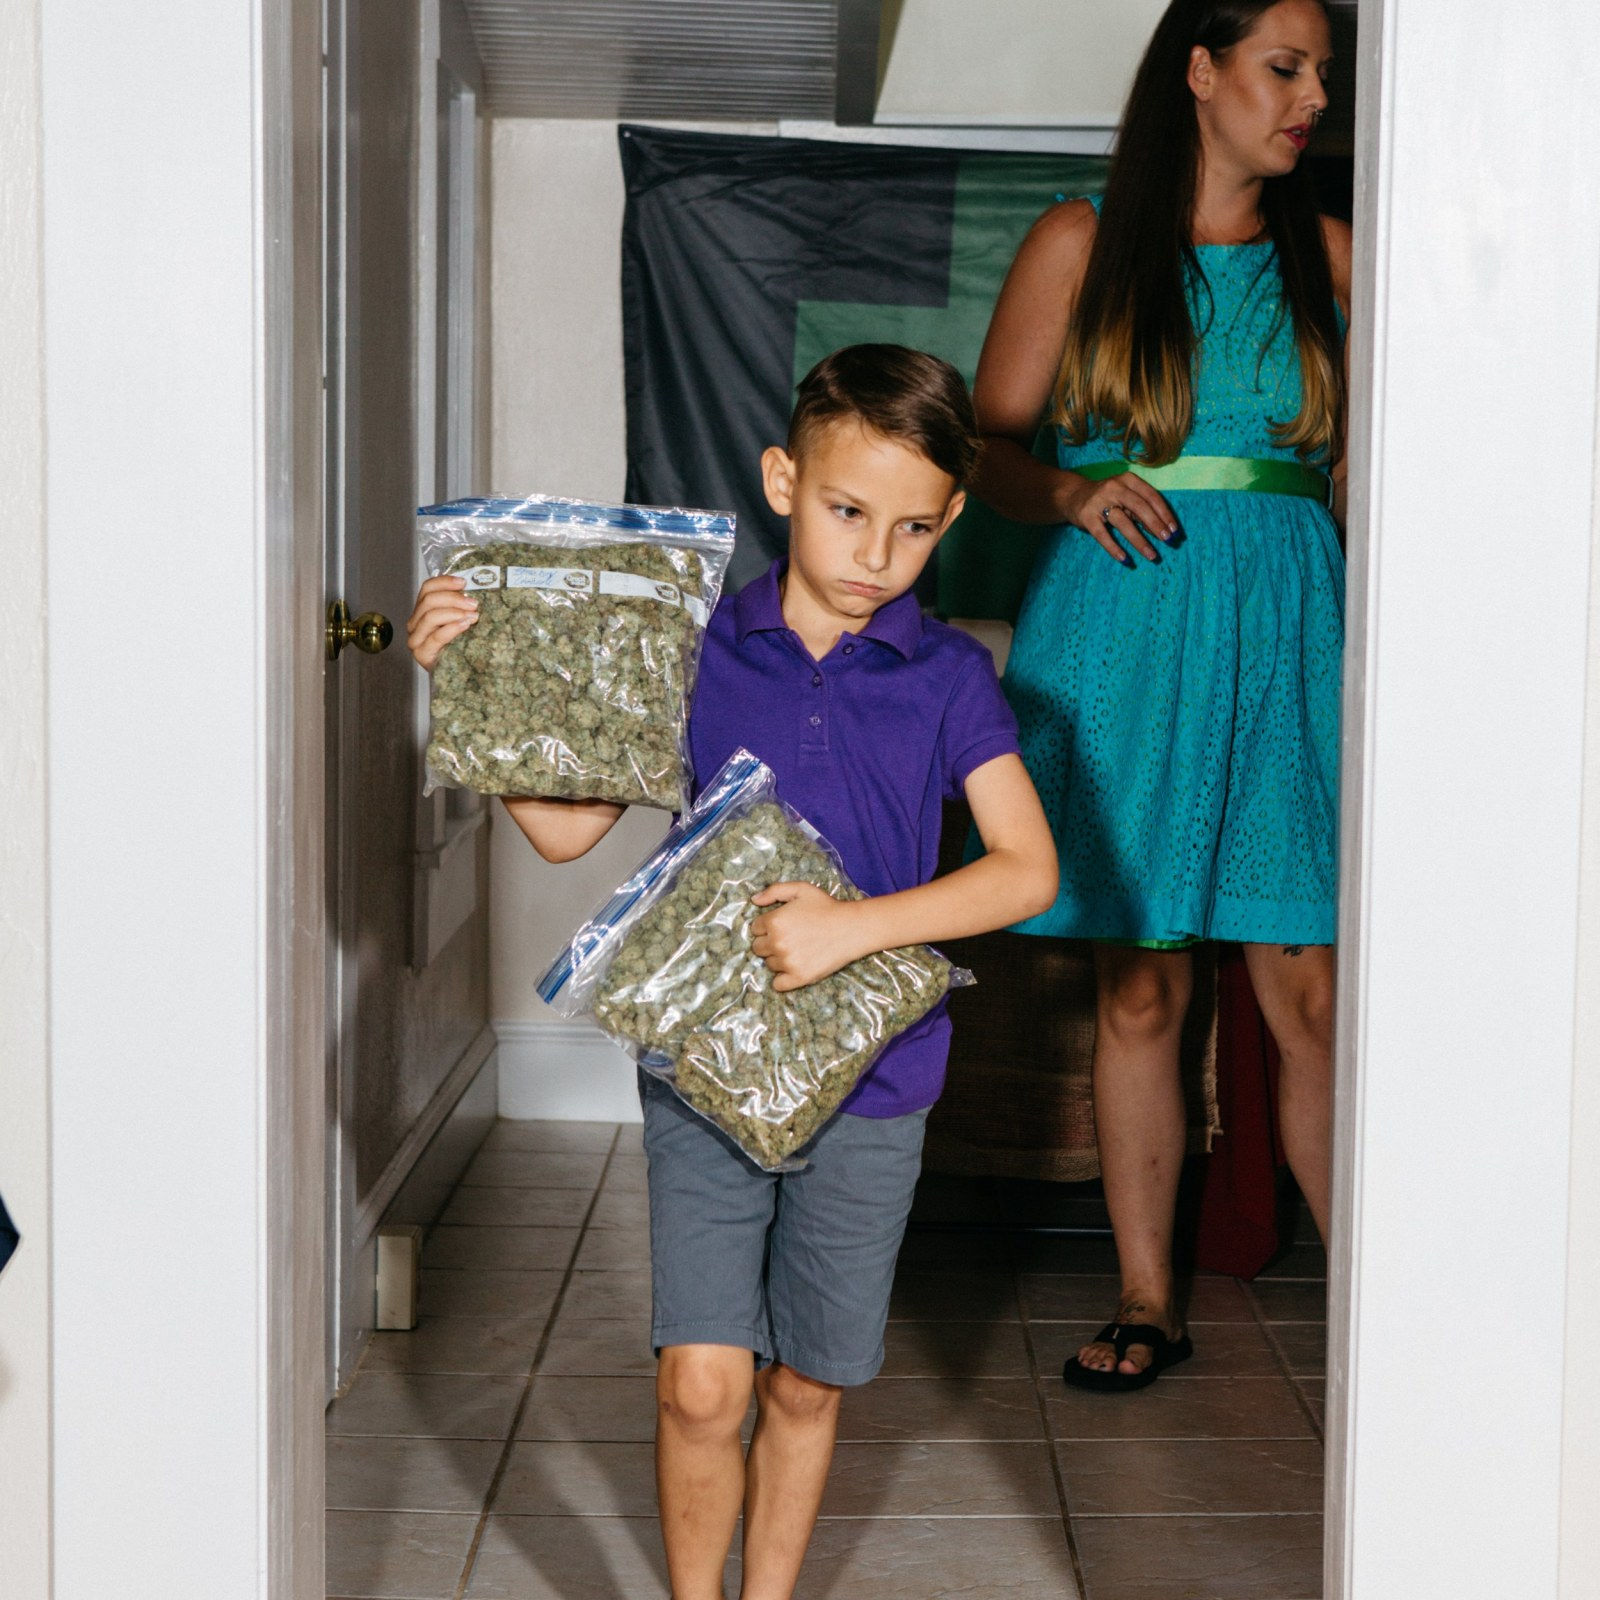 Cancer and Kids: Is Medical Marijuana the Answer?